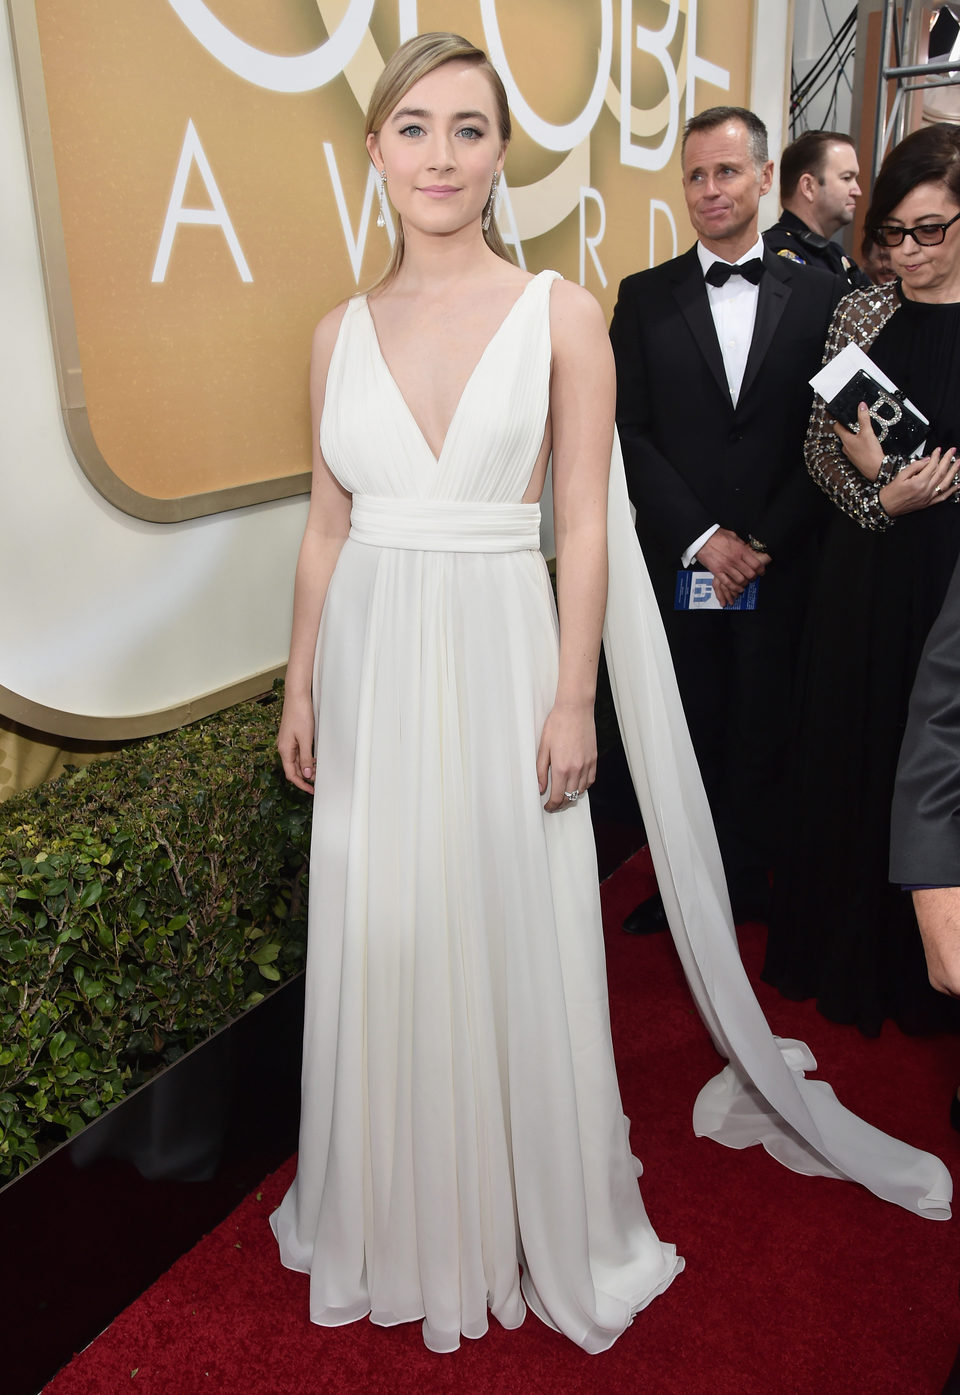 Saoirse Ronan in the 2016 Golden Globes red carpet